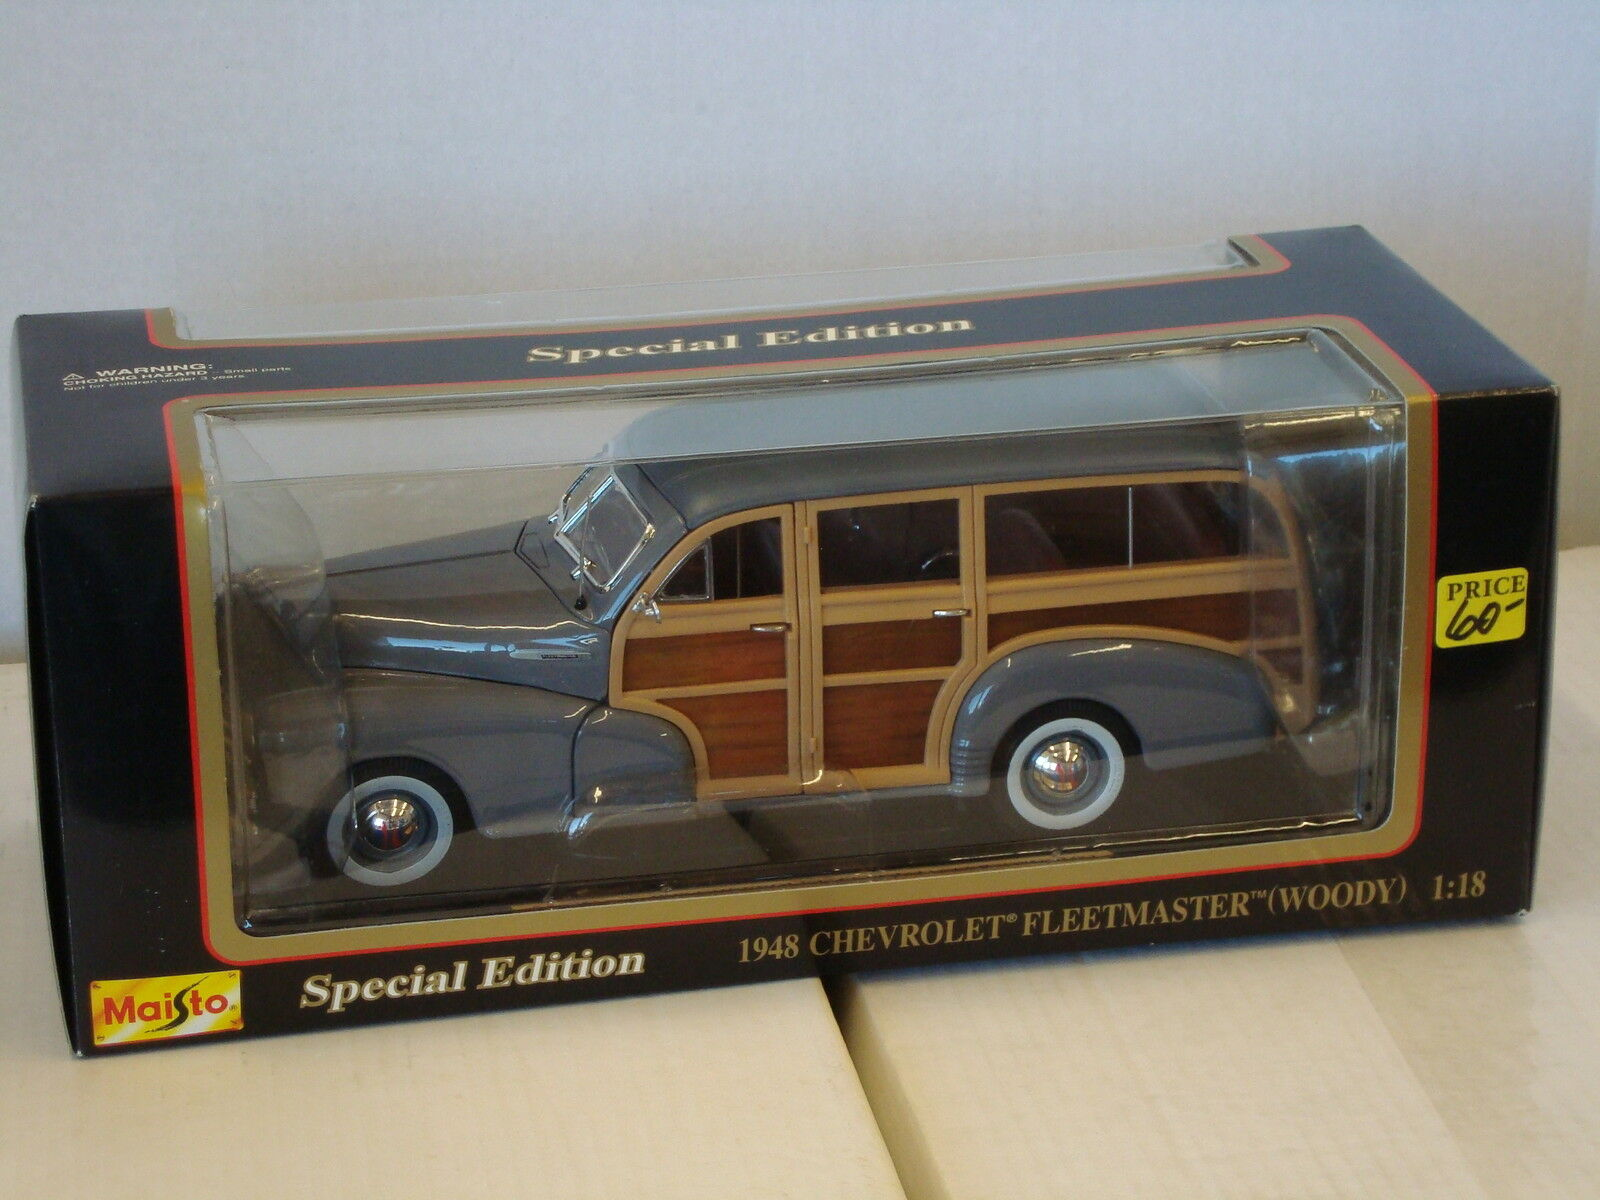 MAISTO SPECIAL EDITION 48 CHEV WOODY